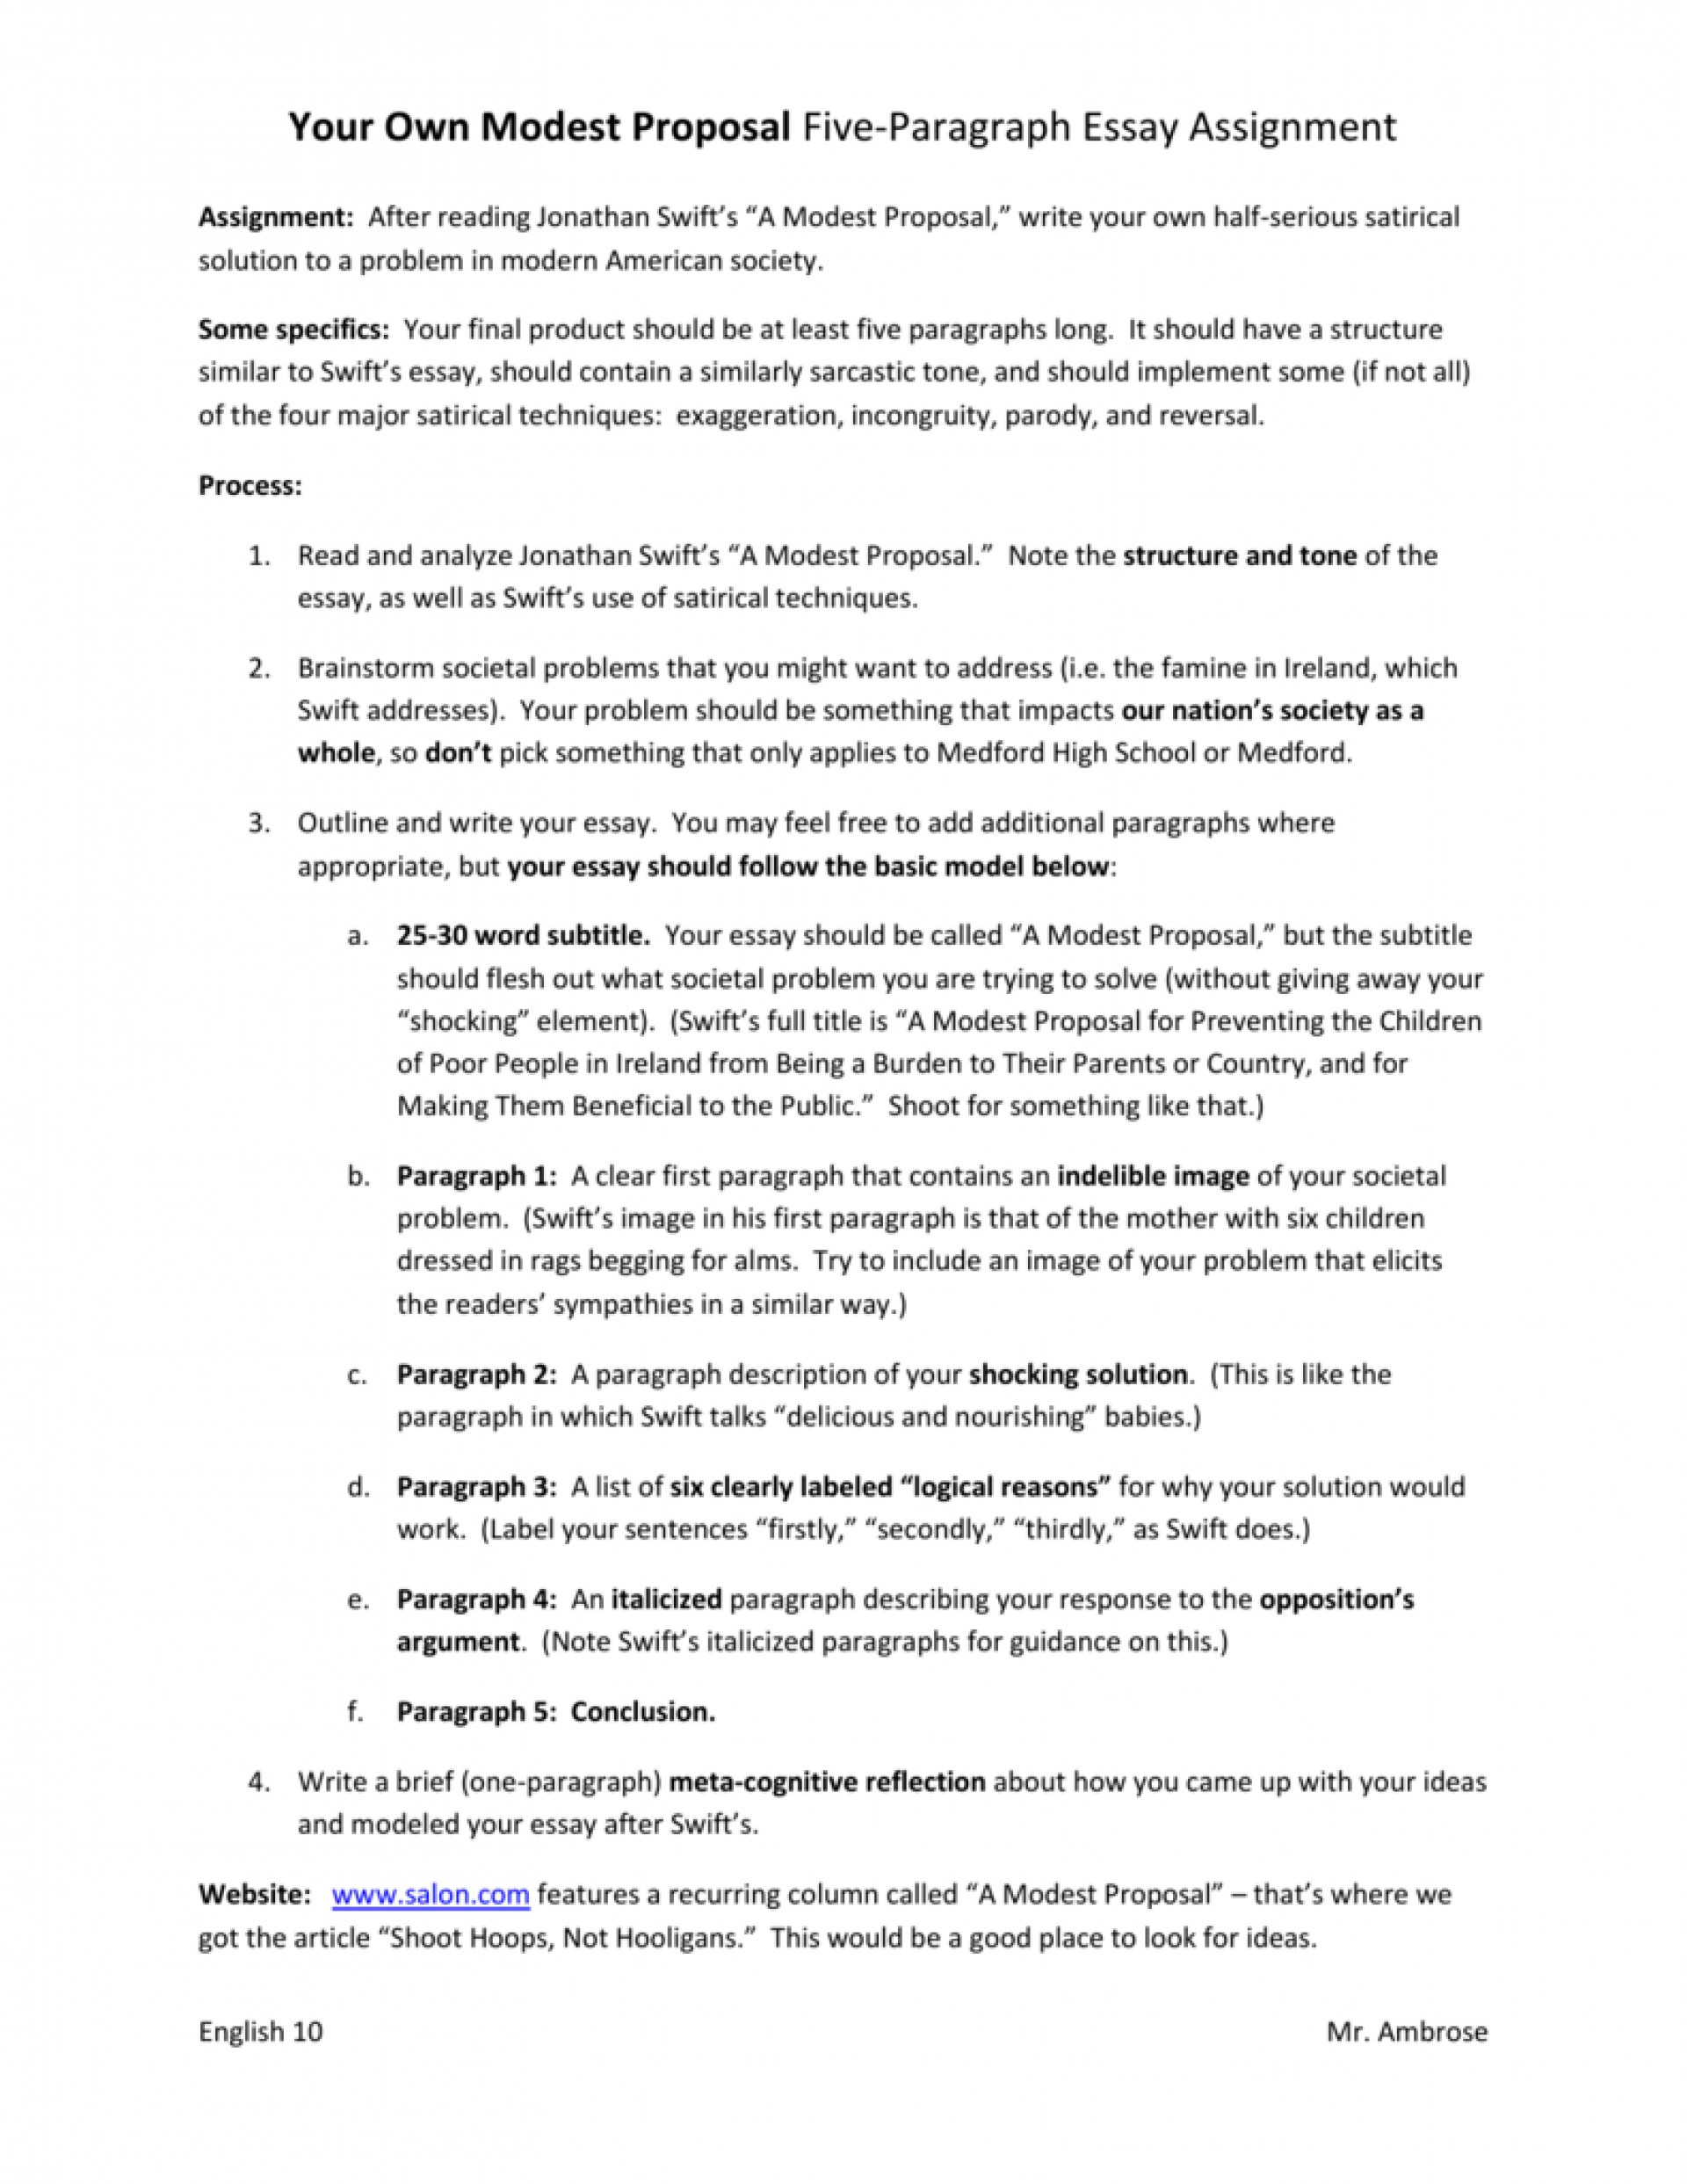 001 Modest Proposal Essay 007326539 1 Astounding A Prompt 50 Essays Questions Example 1920